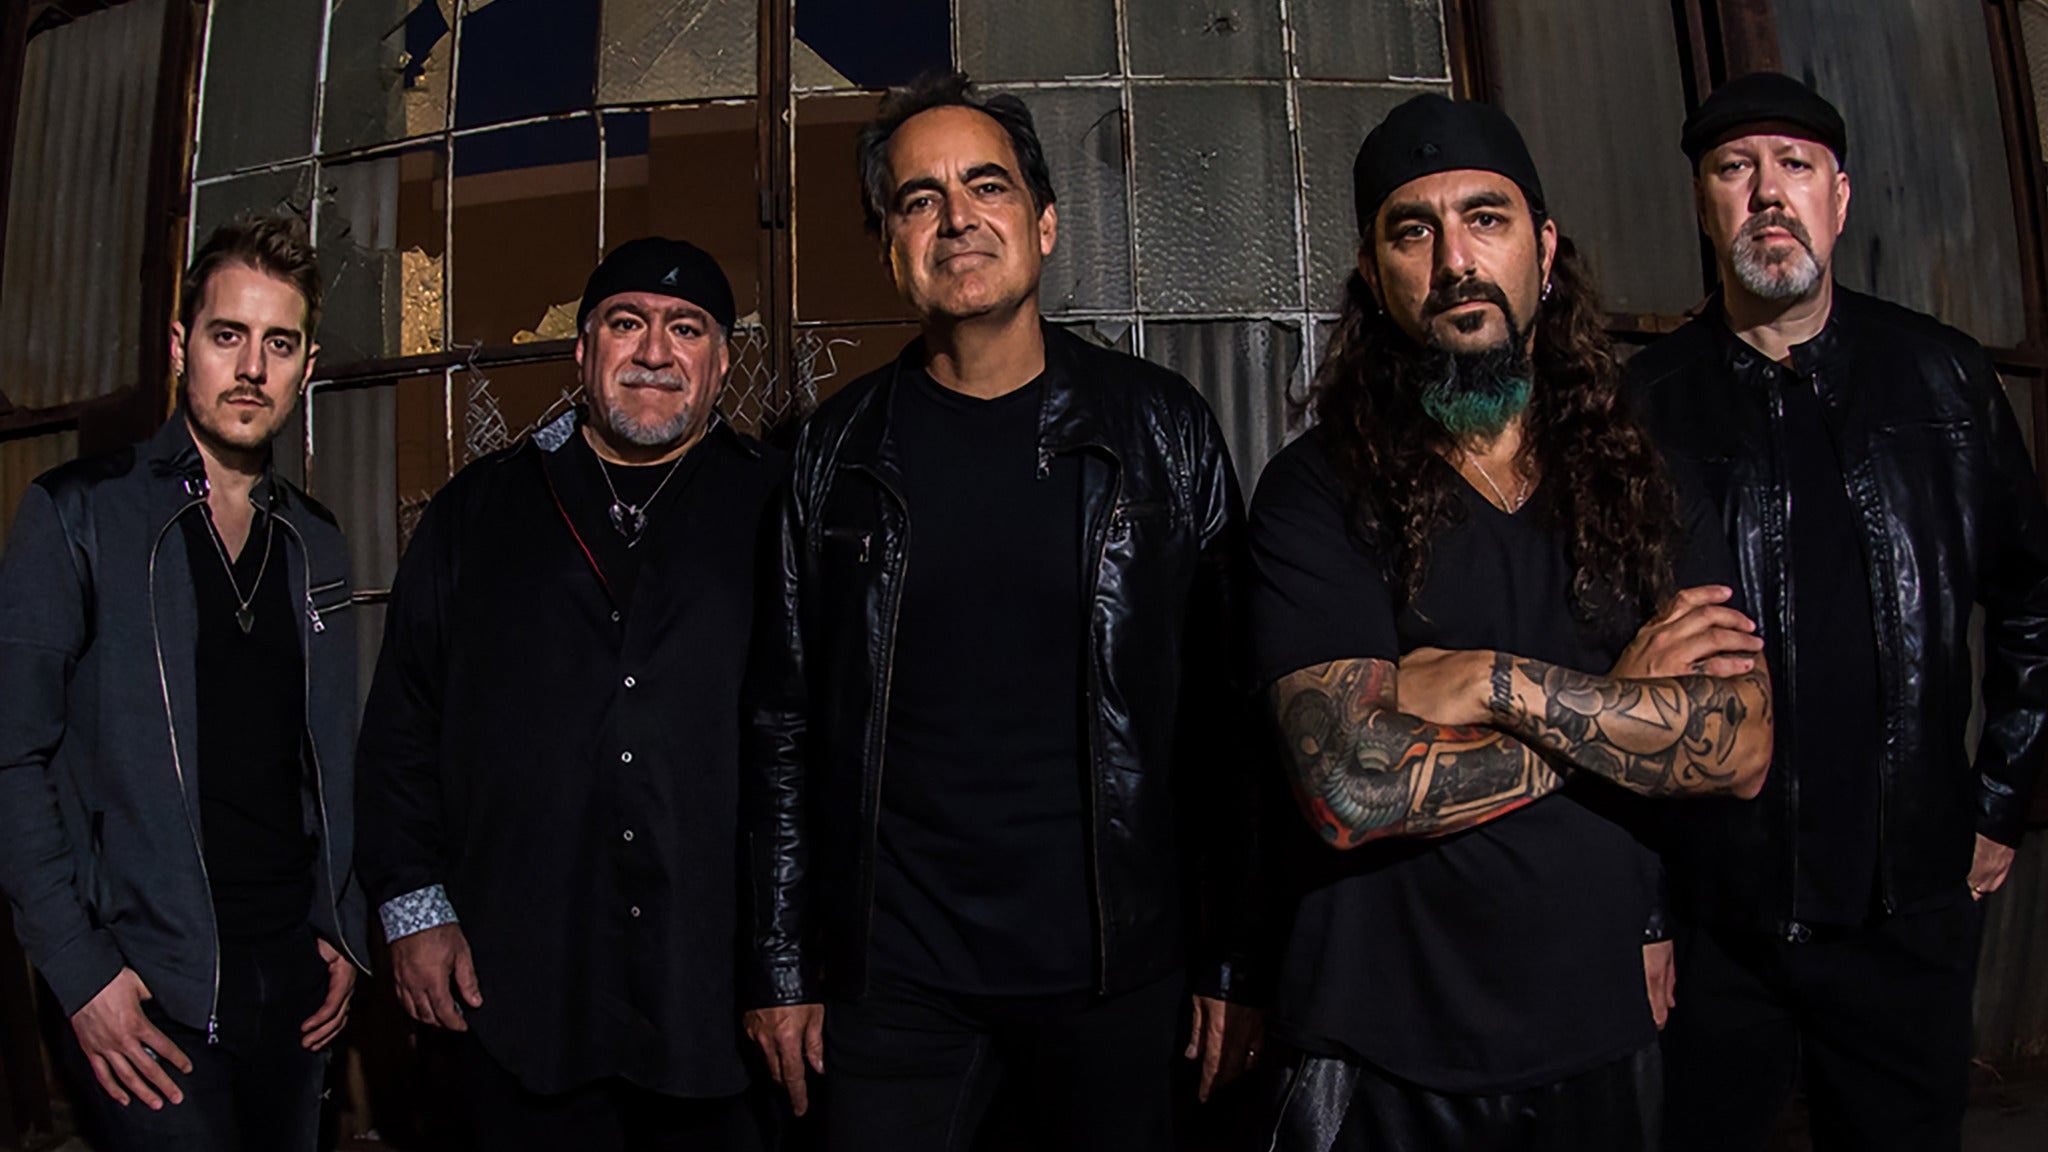 Neal Morse Band at Baltimore Soundstage